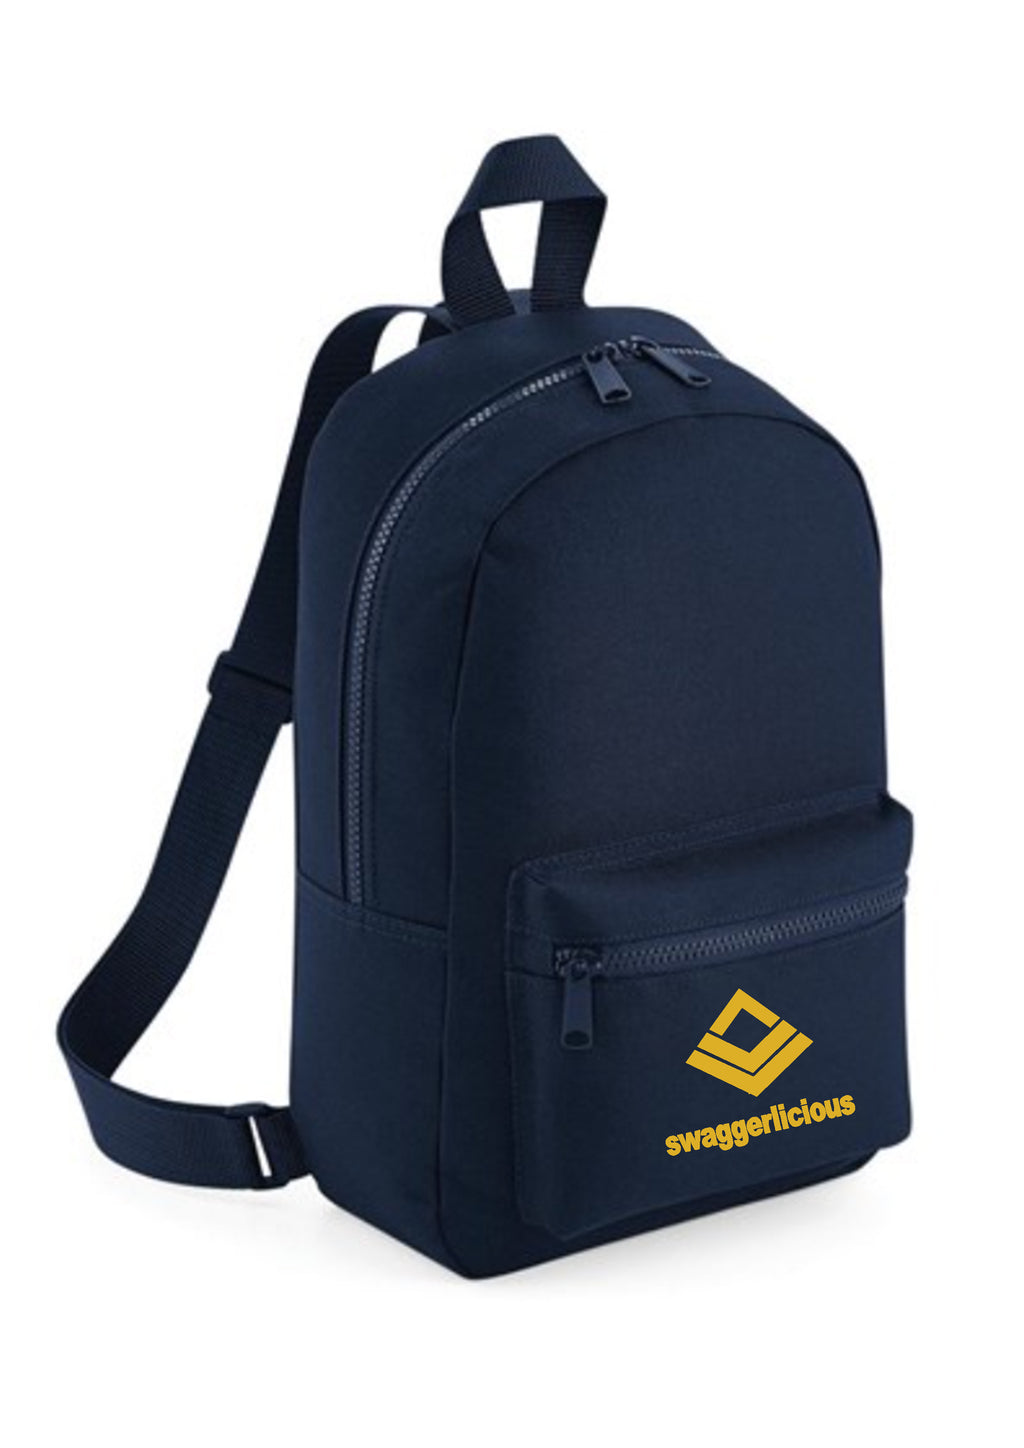 Swaggerlicious Classic French Navy Mini Backpack with Gold Logo - swaggerlicious-clothing.com